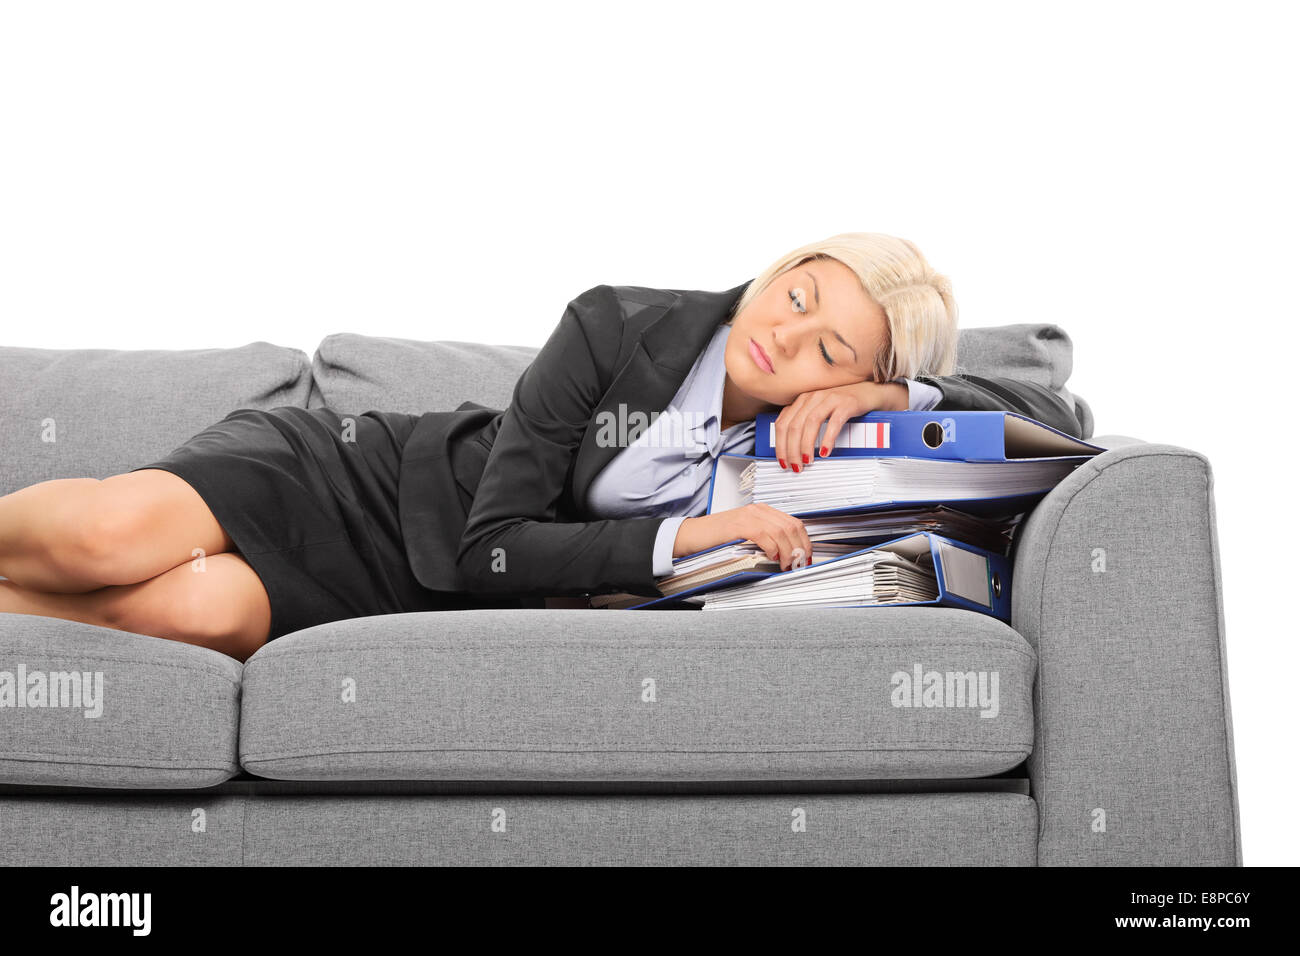 Astounding Black Person Nap Couch Stock Photos Black Person Nap Couch Unemploymentrelief Wooden Chair Designs For Living Room Unemploymentrelieforg